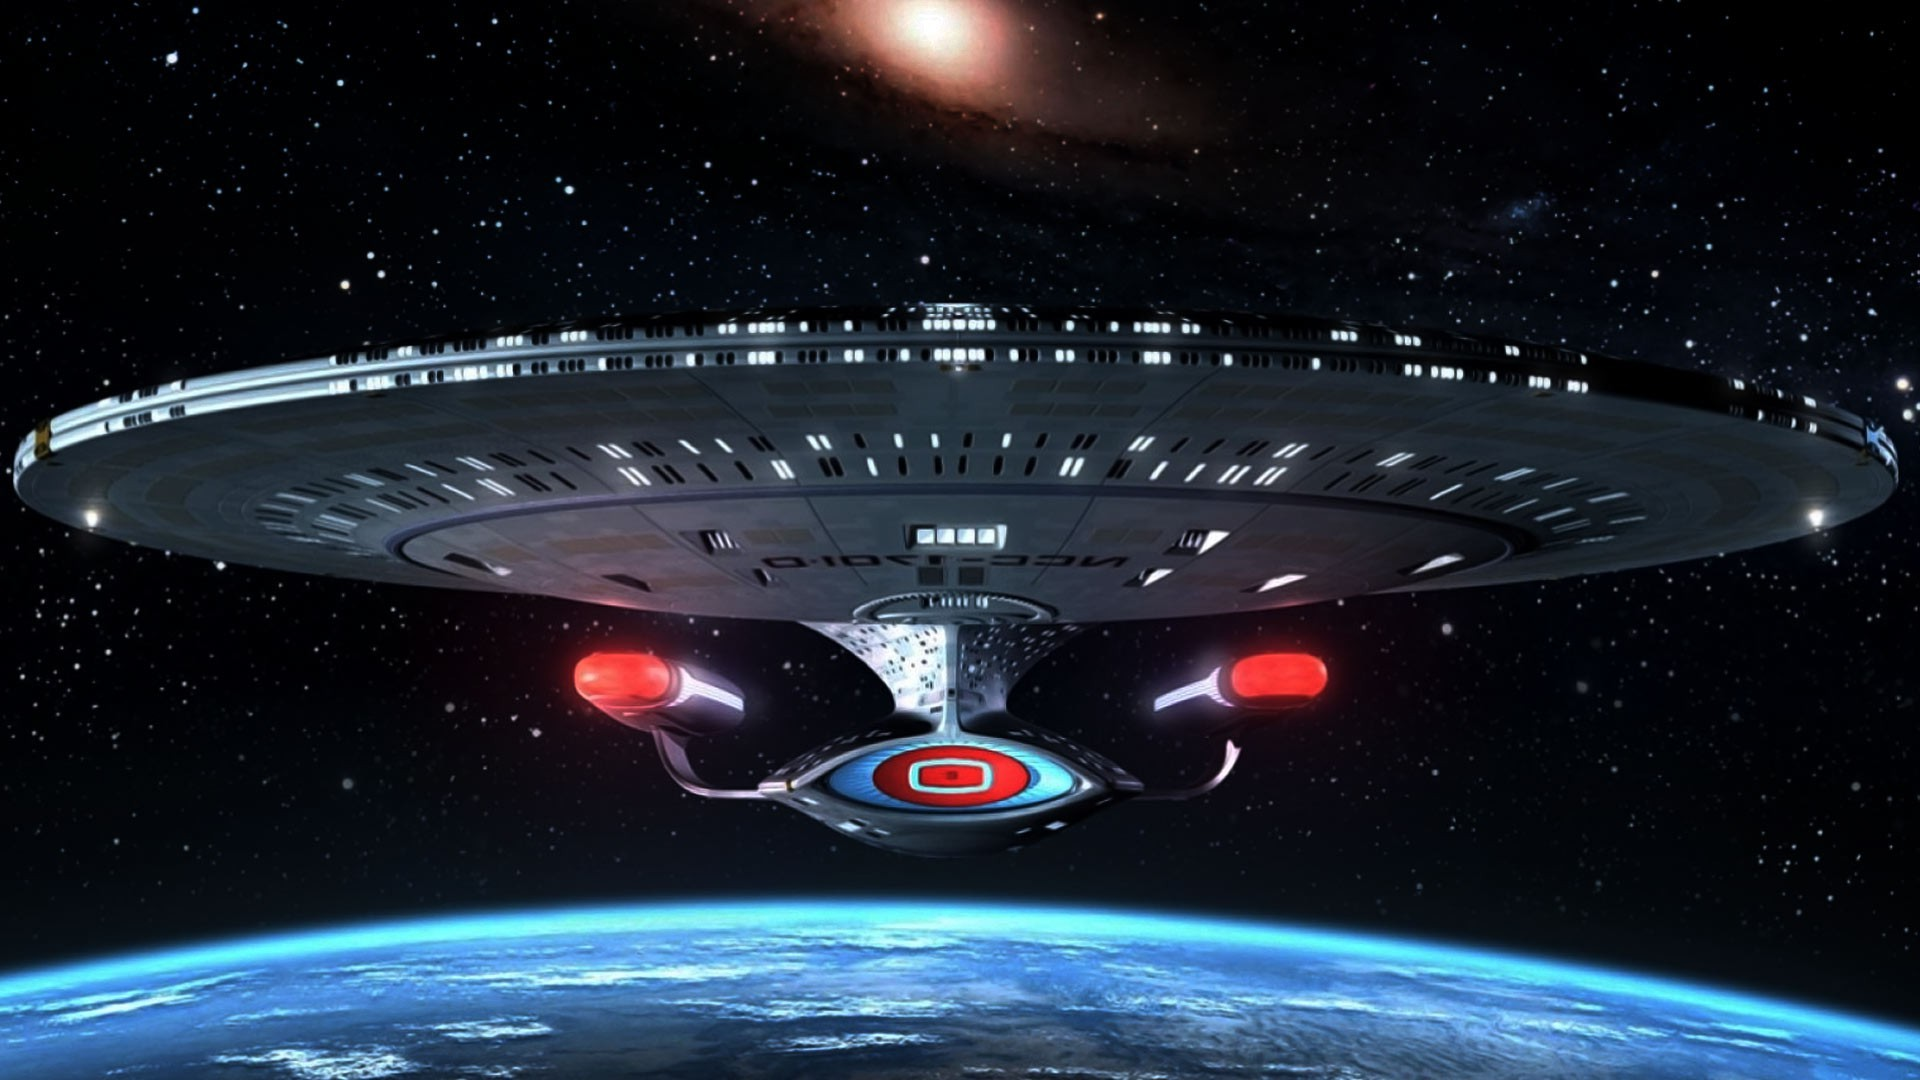 Star Trek Enterprise Wallpaper HD (70+ Images